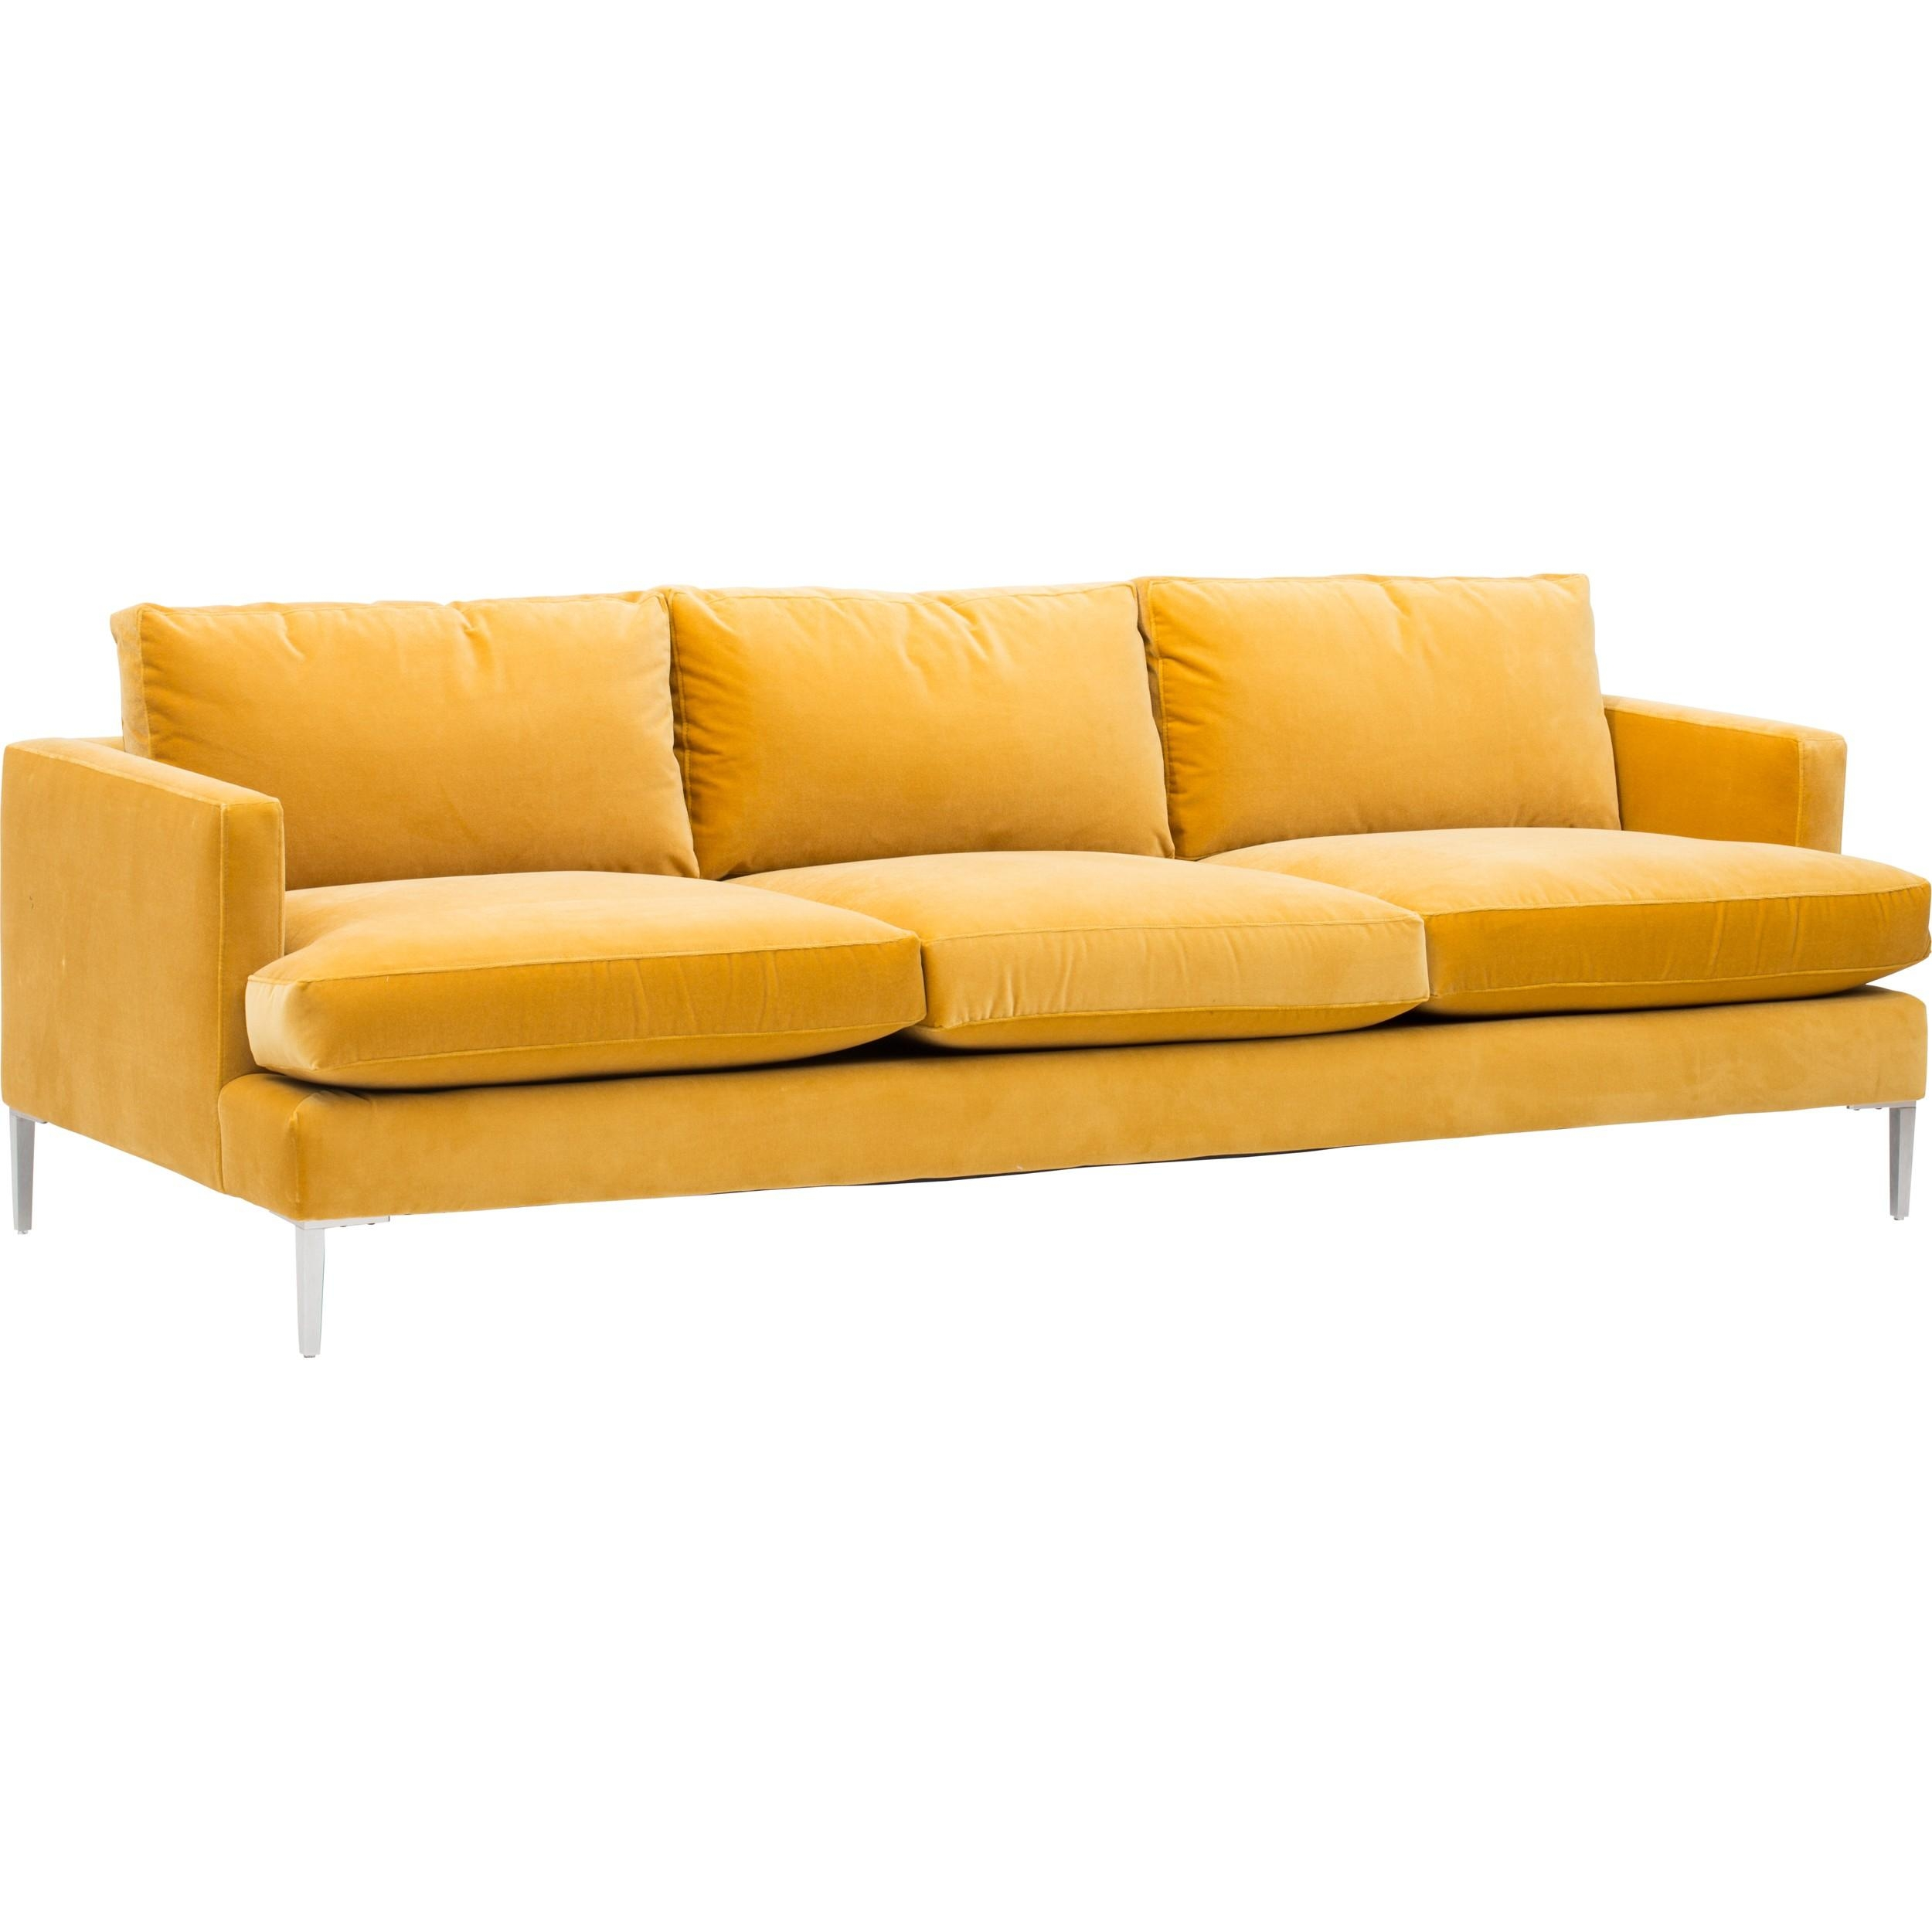 Beckham Sofa, Vance Gold – Fabric – Sofas – Furniture Inside Fabric Sofas (Image 2 of 20)